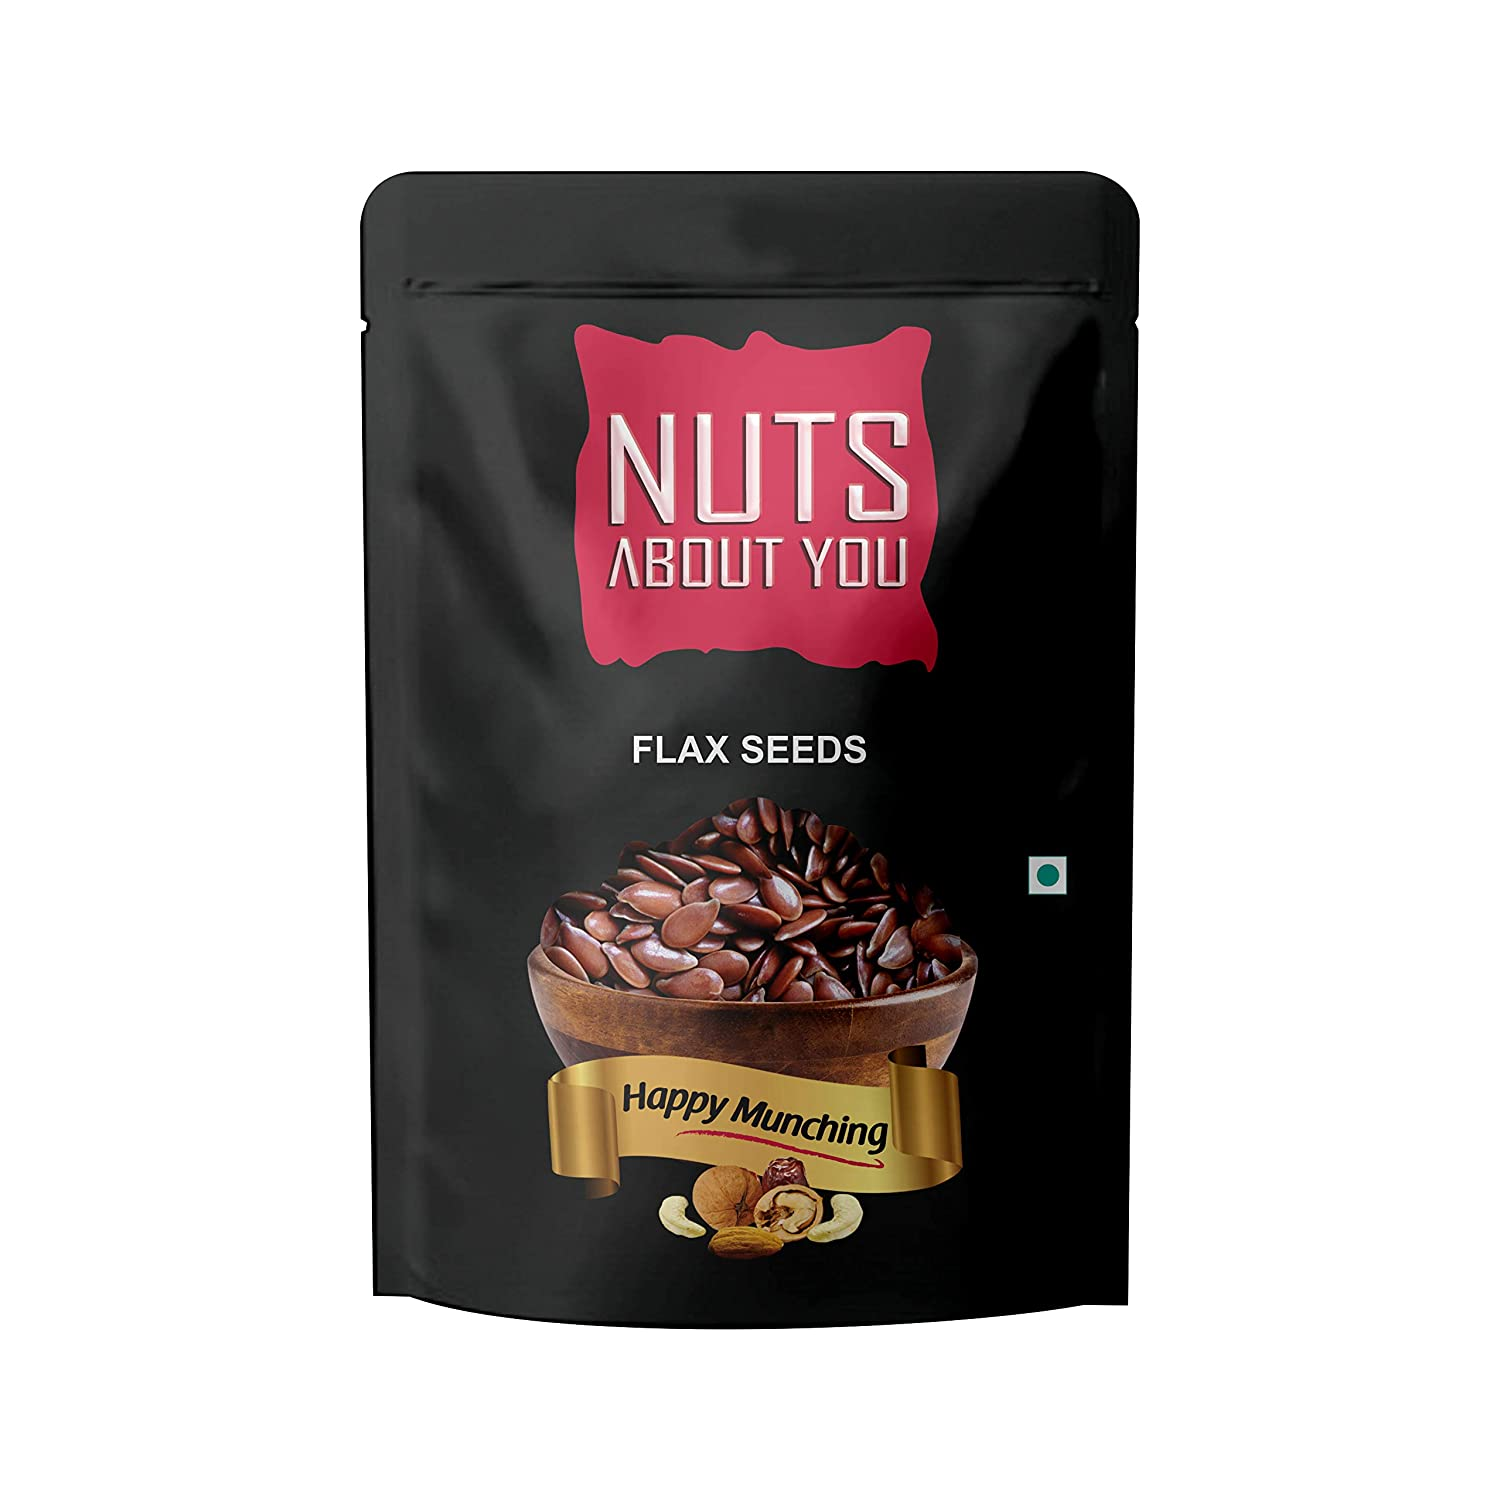 NUTS ABOUT YOU Premium Dry fruits up to 50% OFF at Amazon